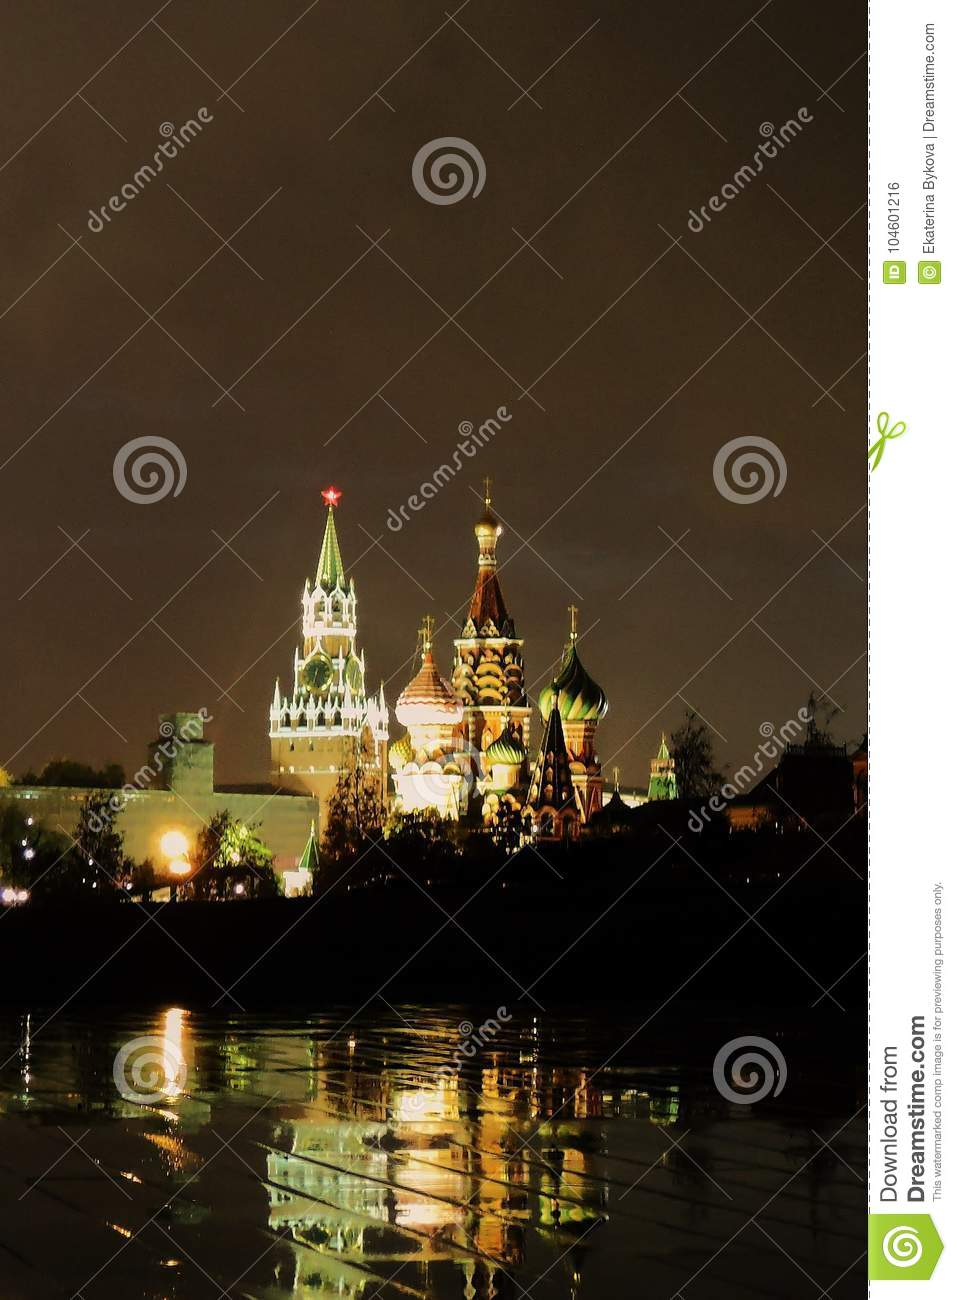 Moscow Kremlin and Saint Basils Cathedral at night.